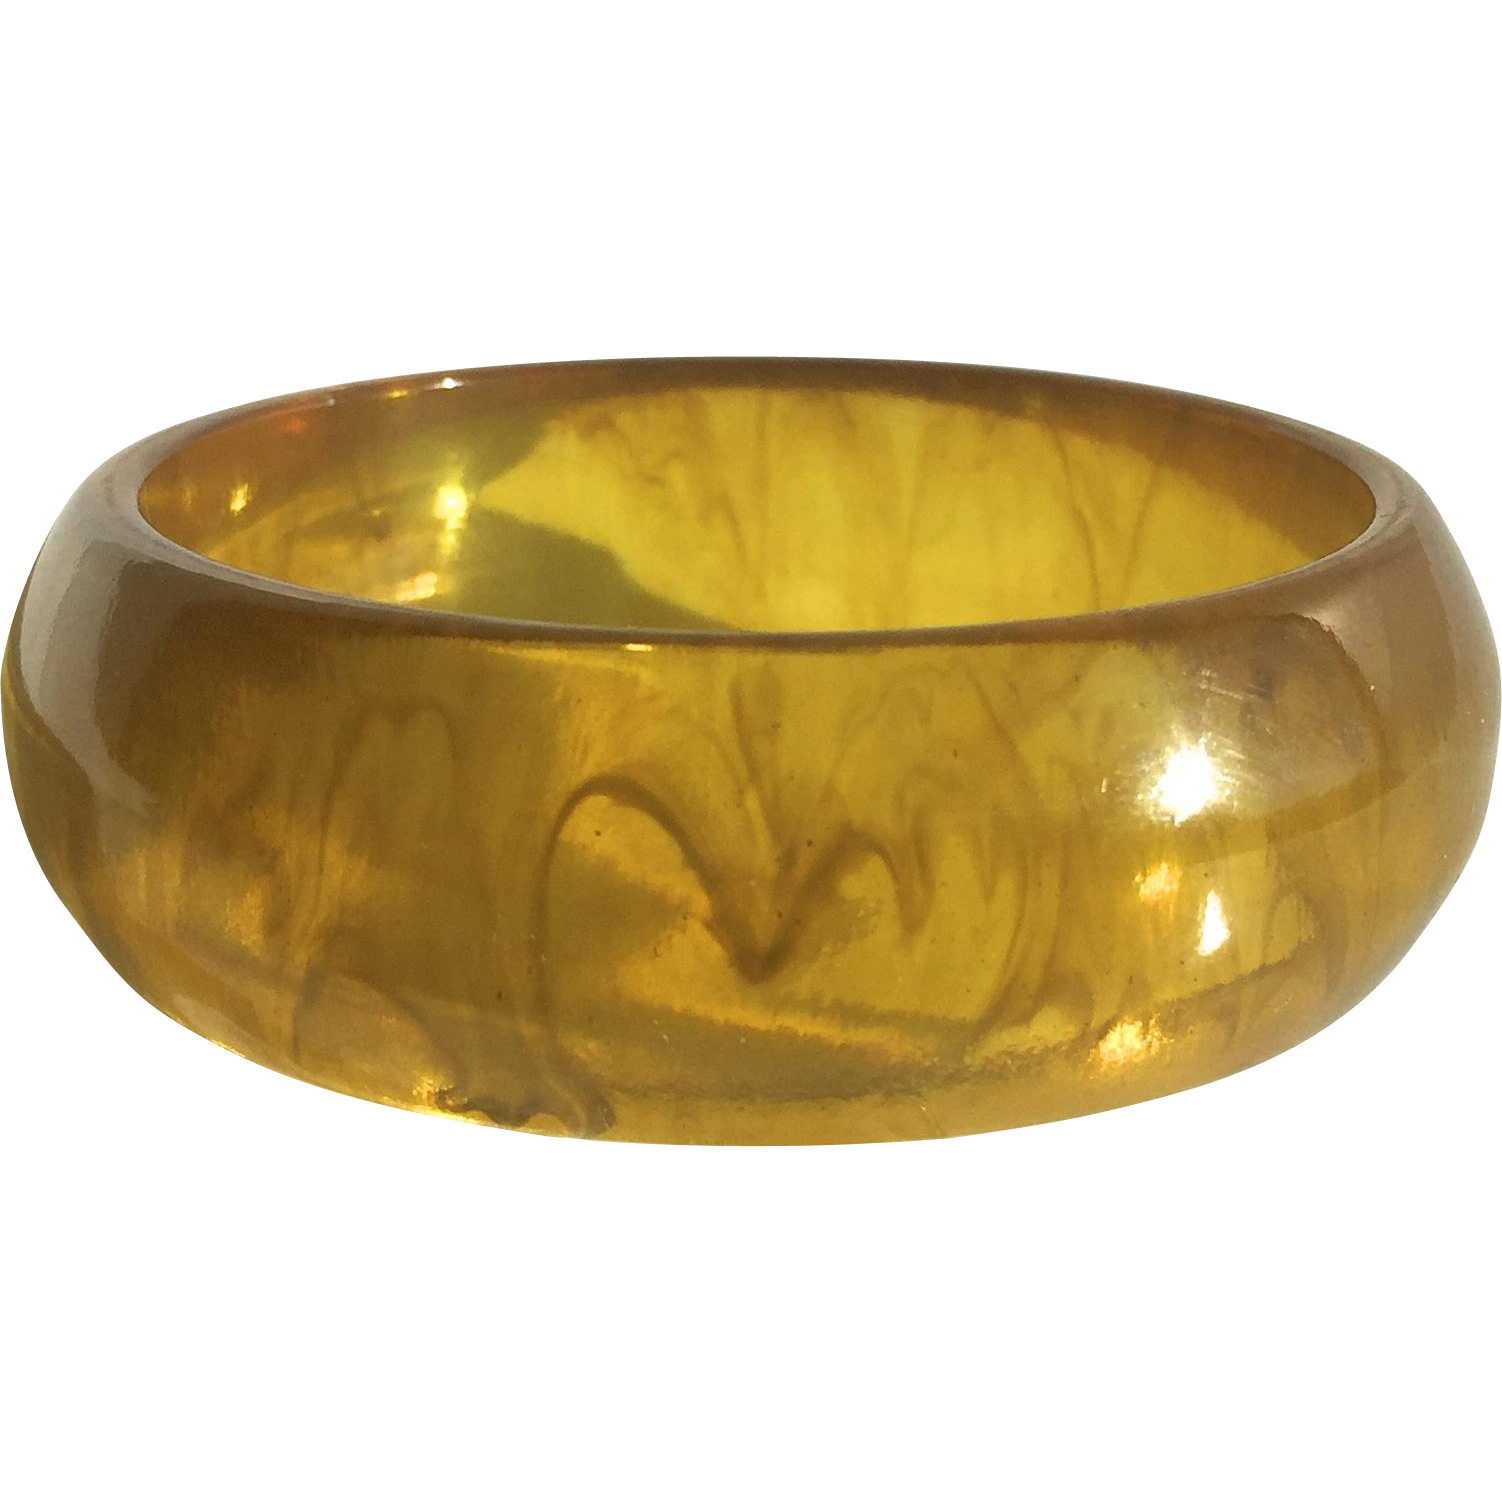 Bakelite Bangle Bracelet Transparent Marbled Apple Juice